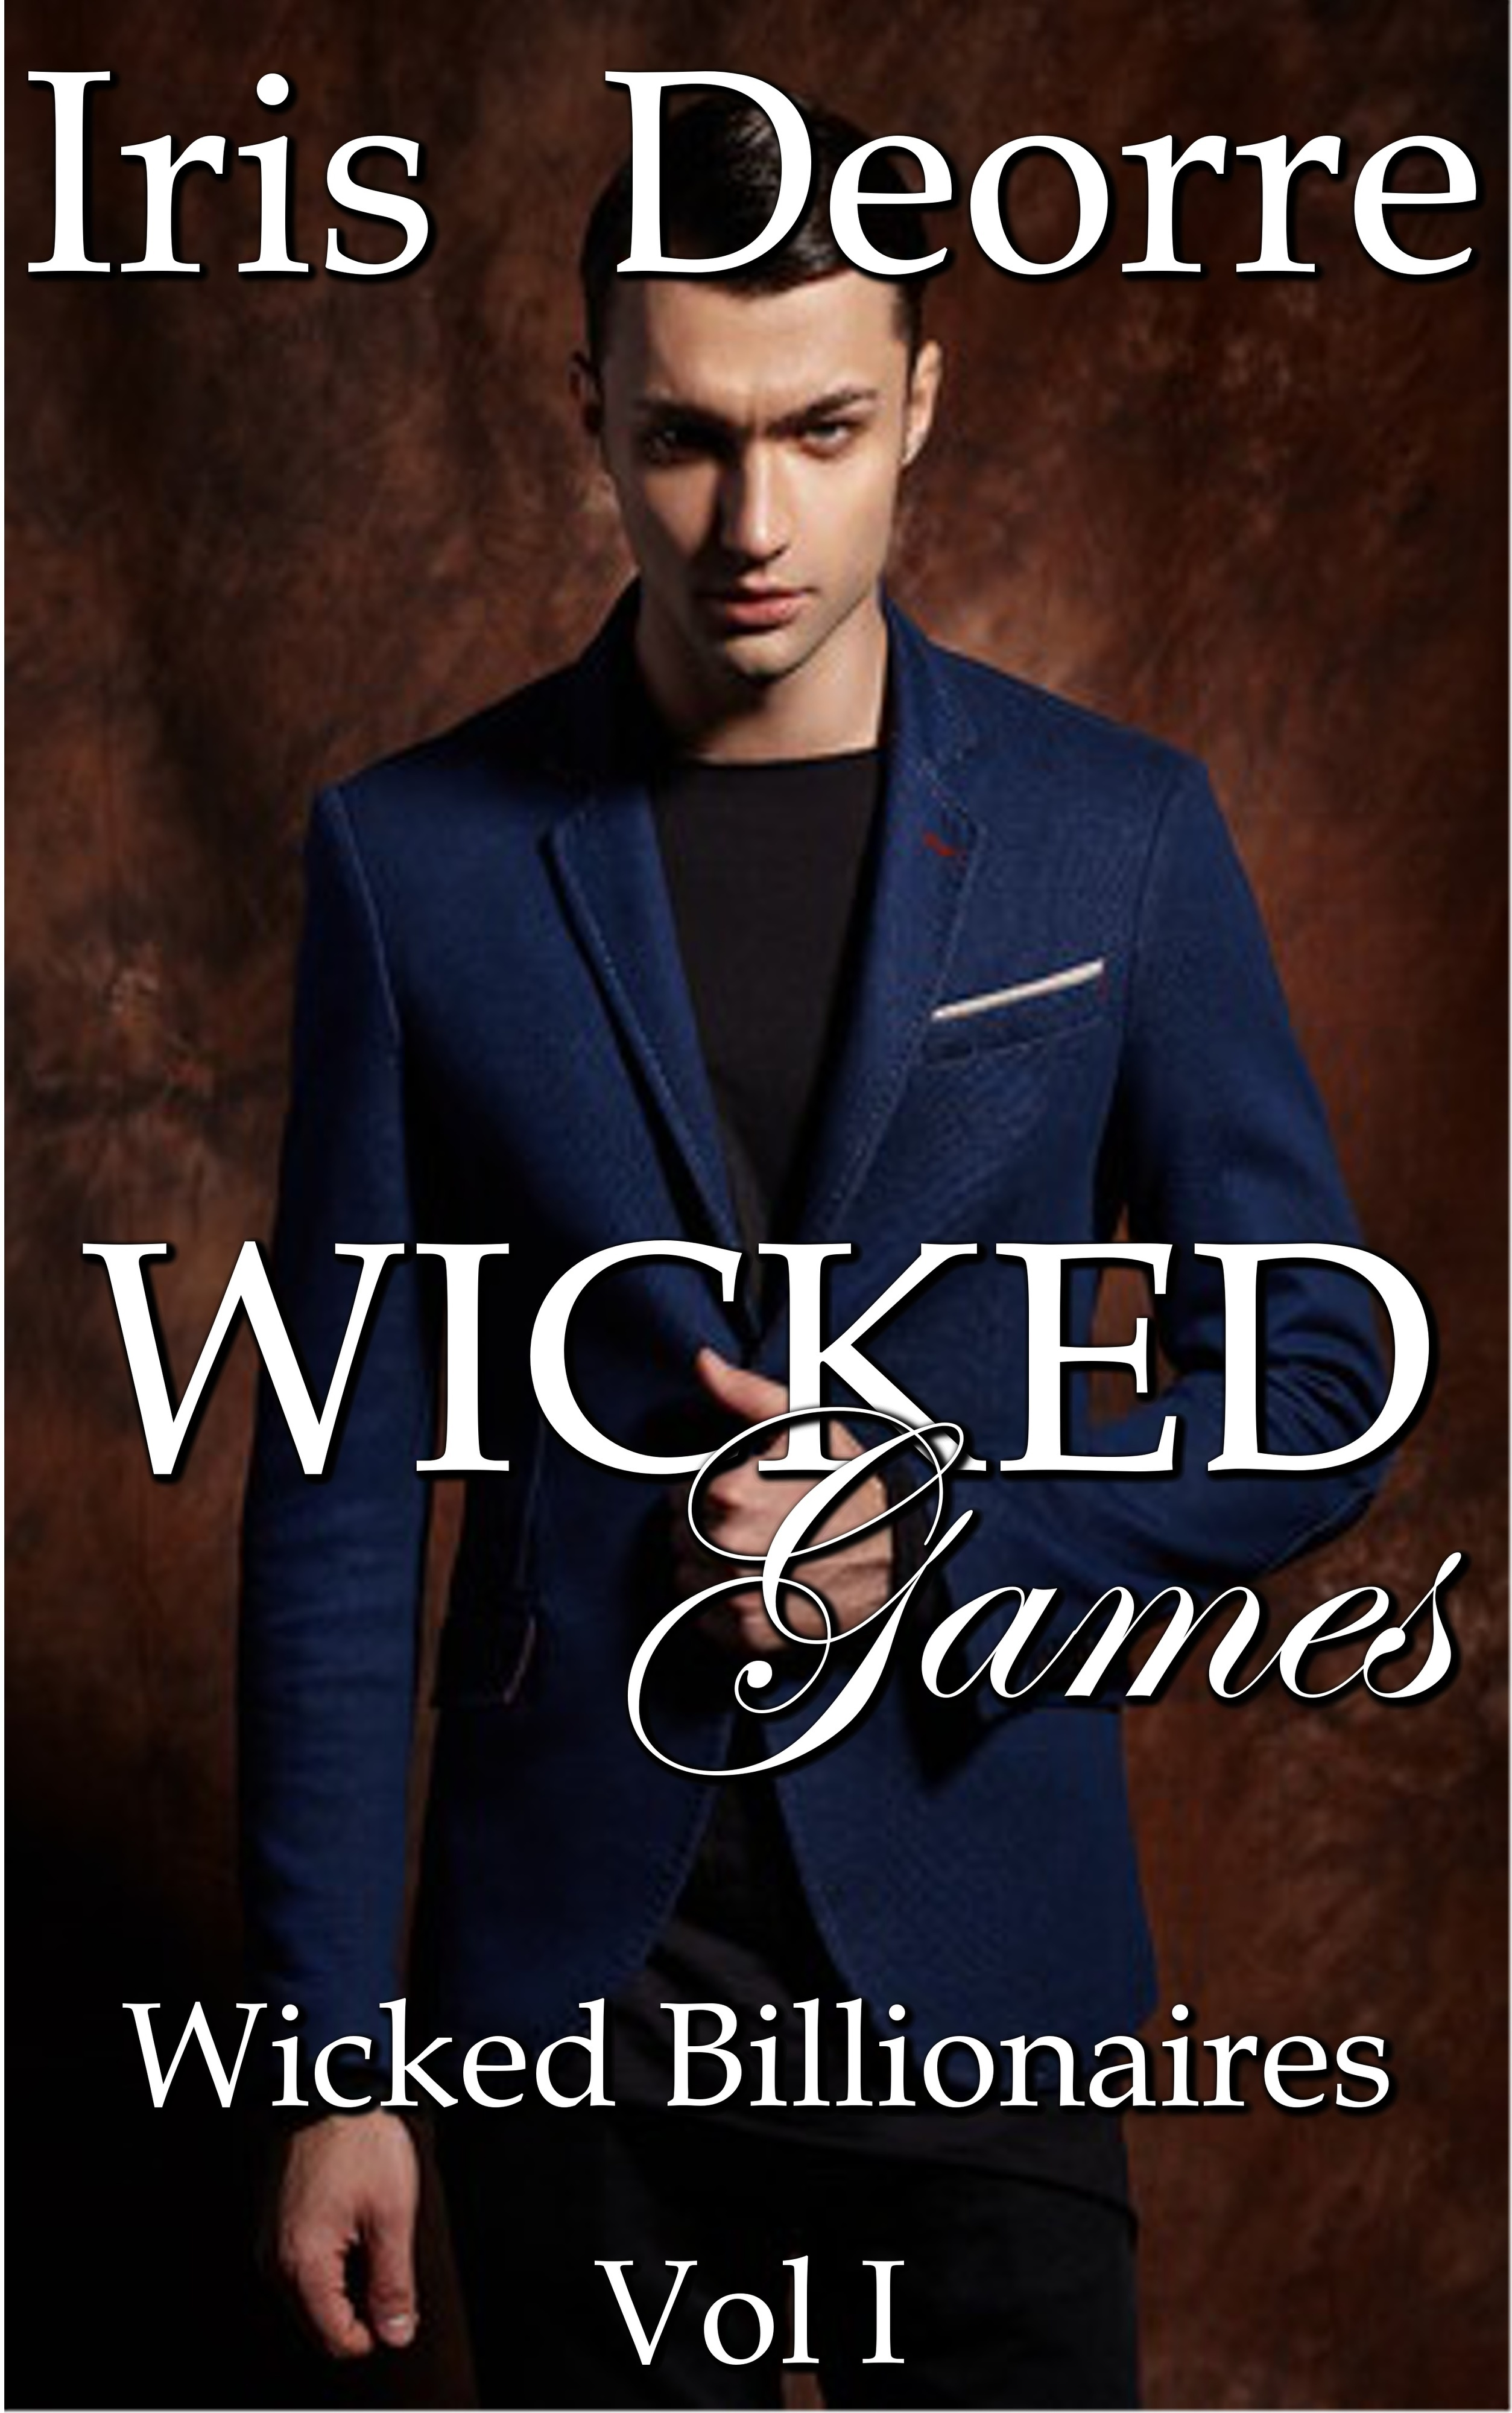 Wicked Games Vol I Iris Deorre